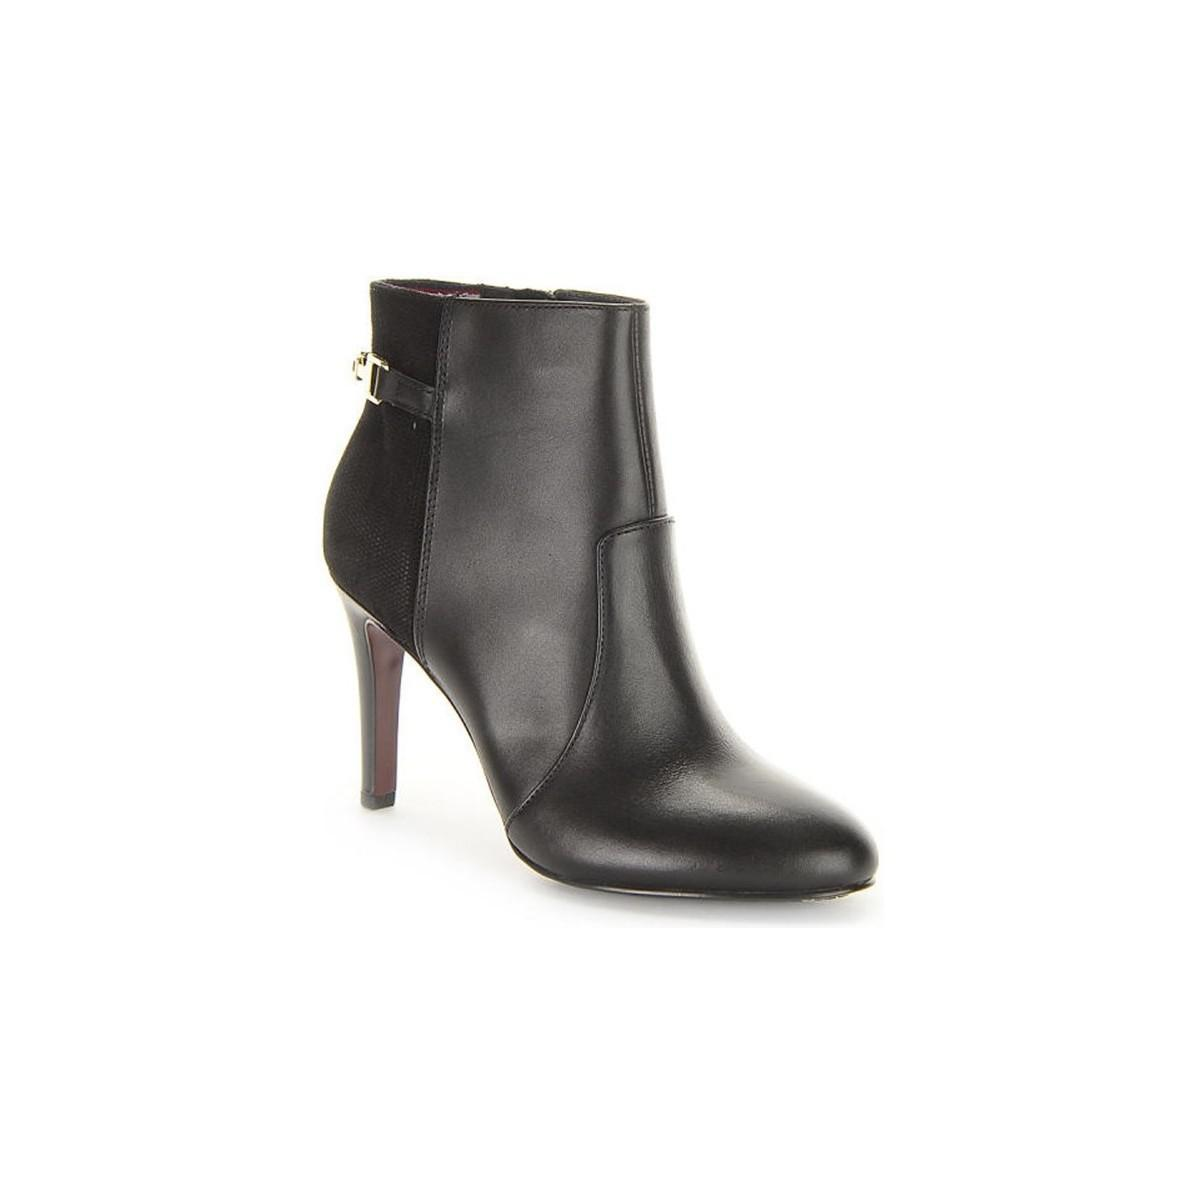 f98abad3 Tommy Hilfiger Layla 22c Women's Low Ankle Boots In Black in Black ...